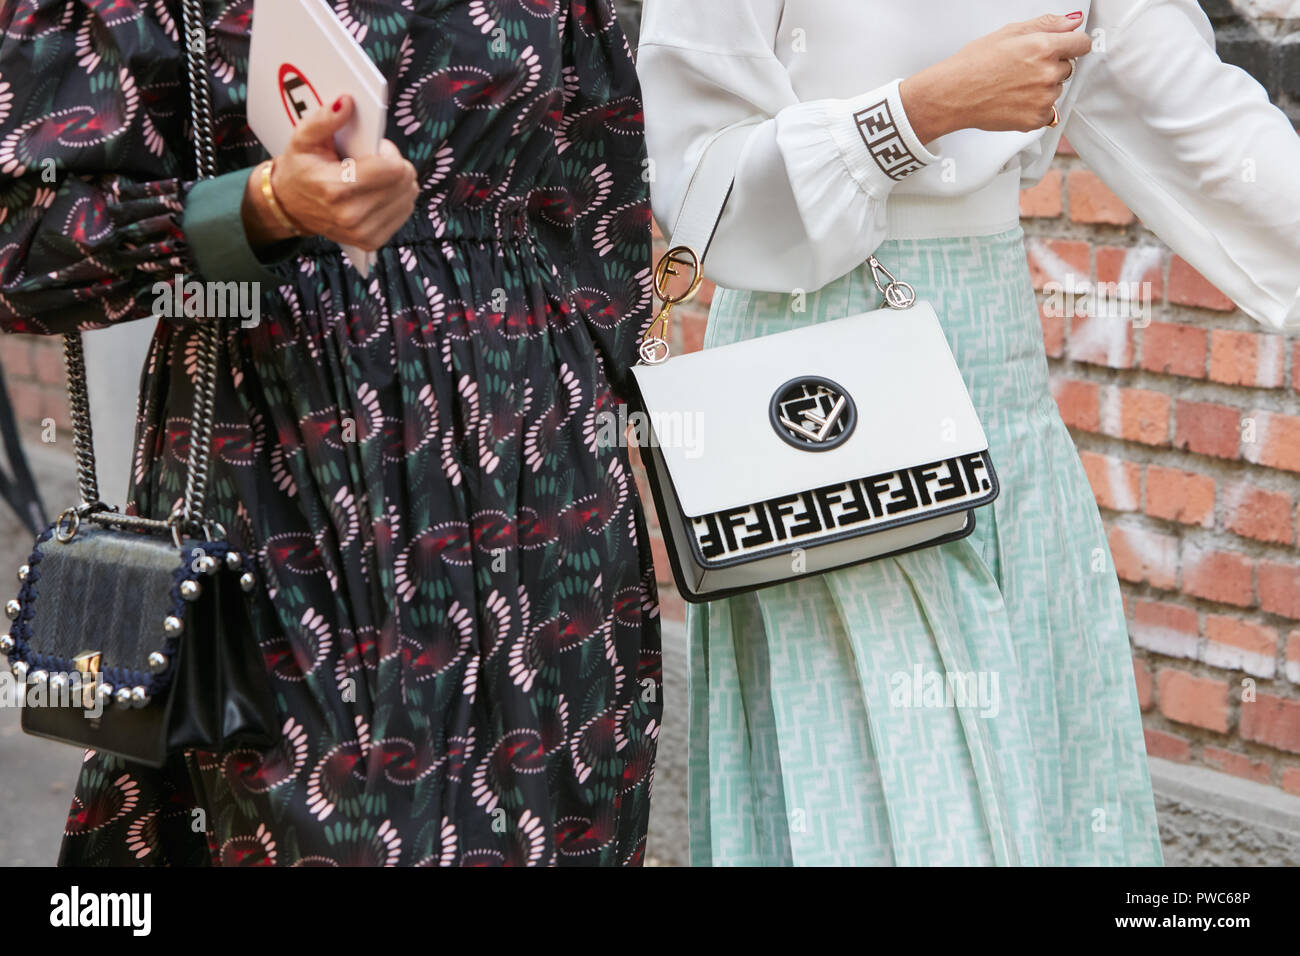 7514944f7d MILAN, ITALY - SEPTEMBER 20, 2018: Women with black and white Fendi ...